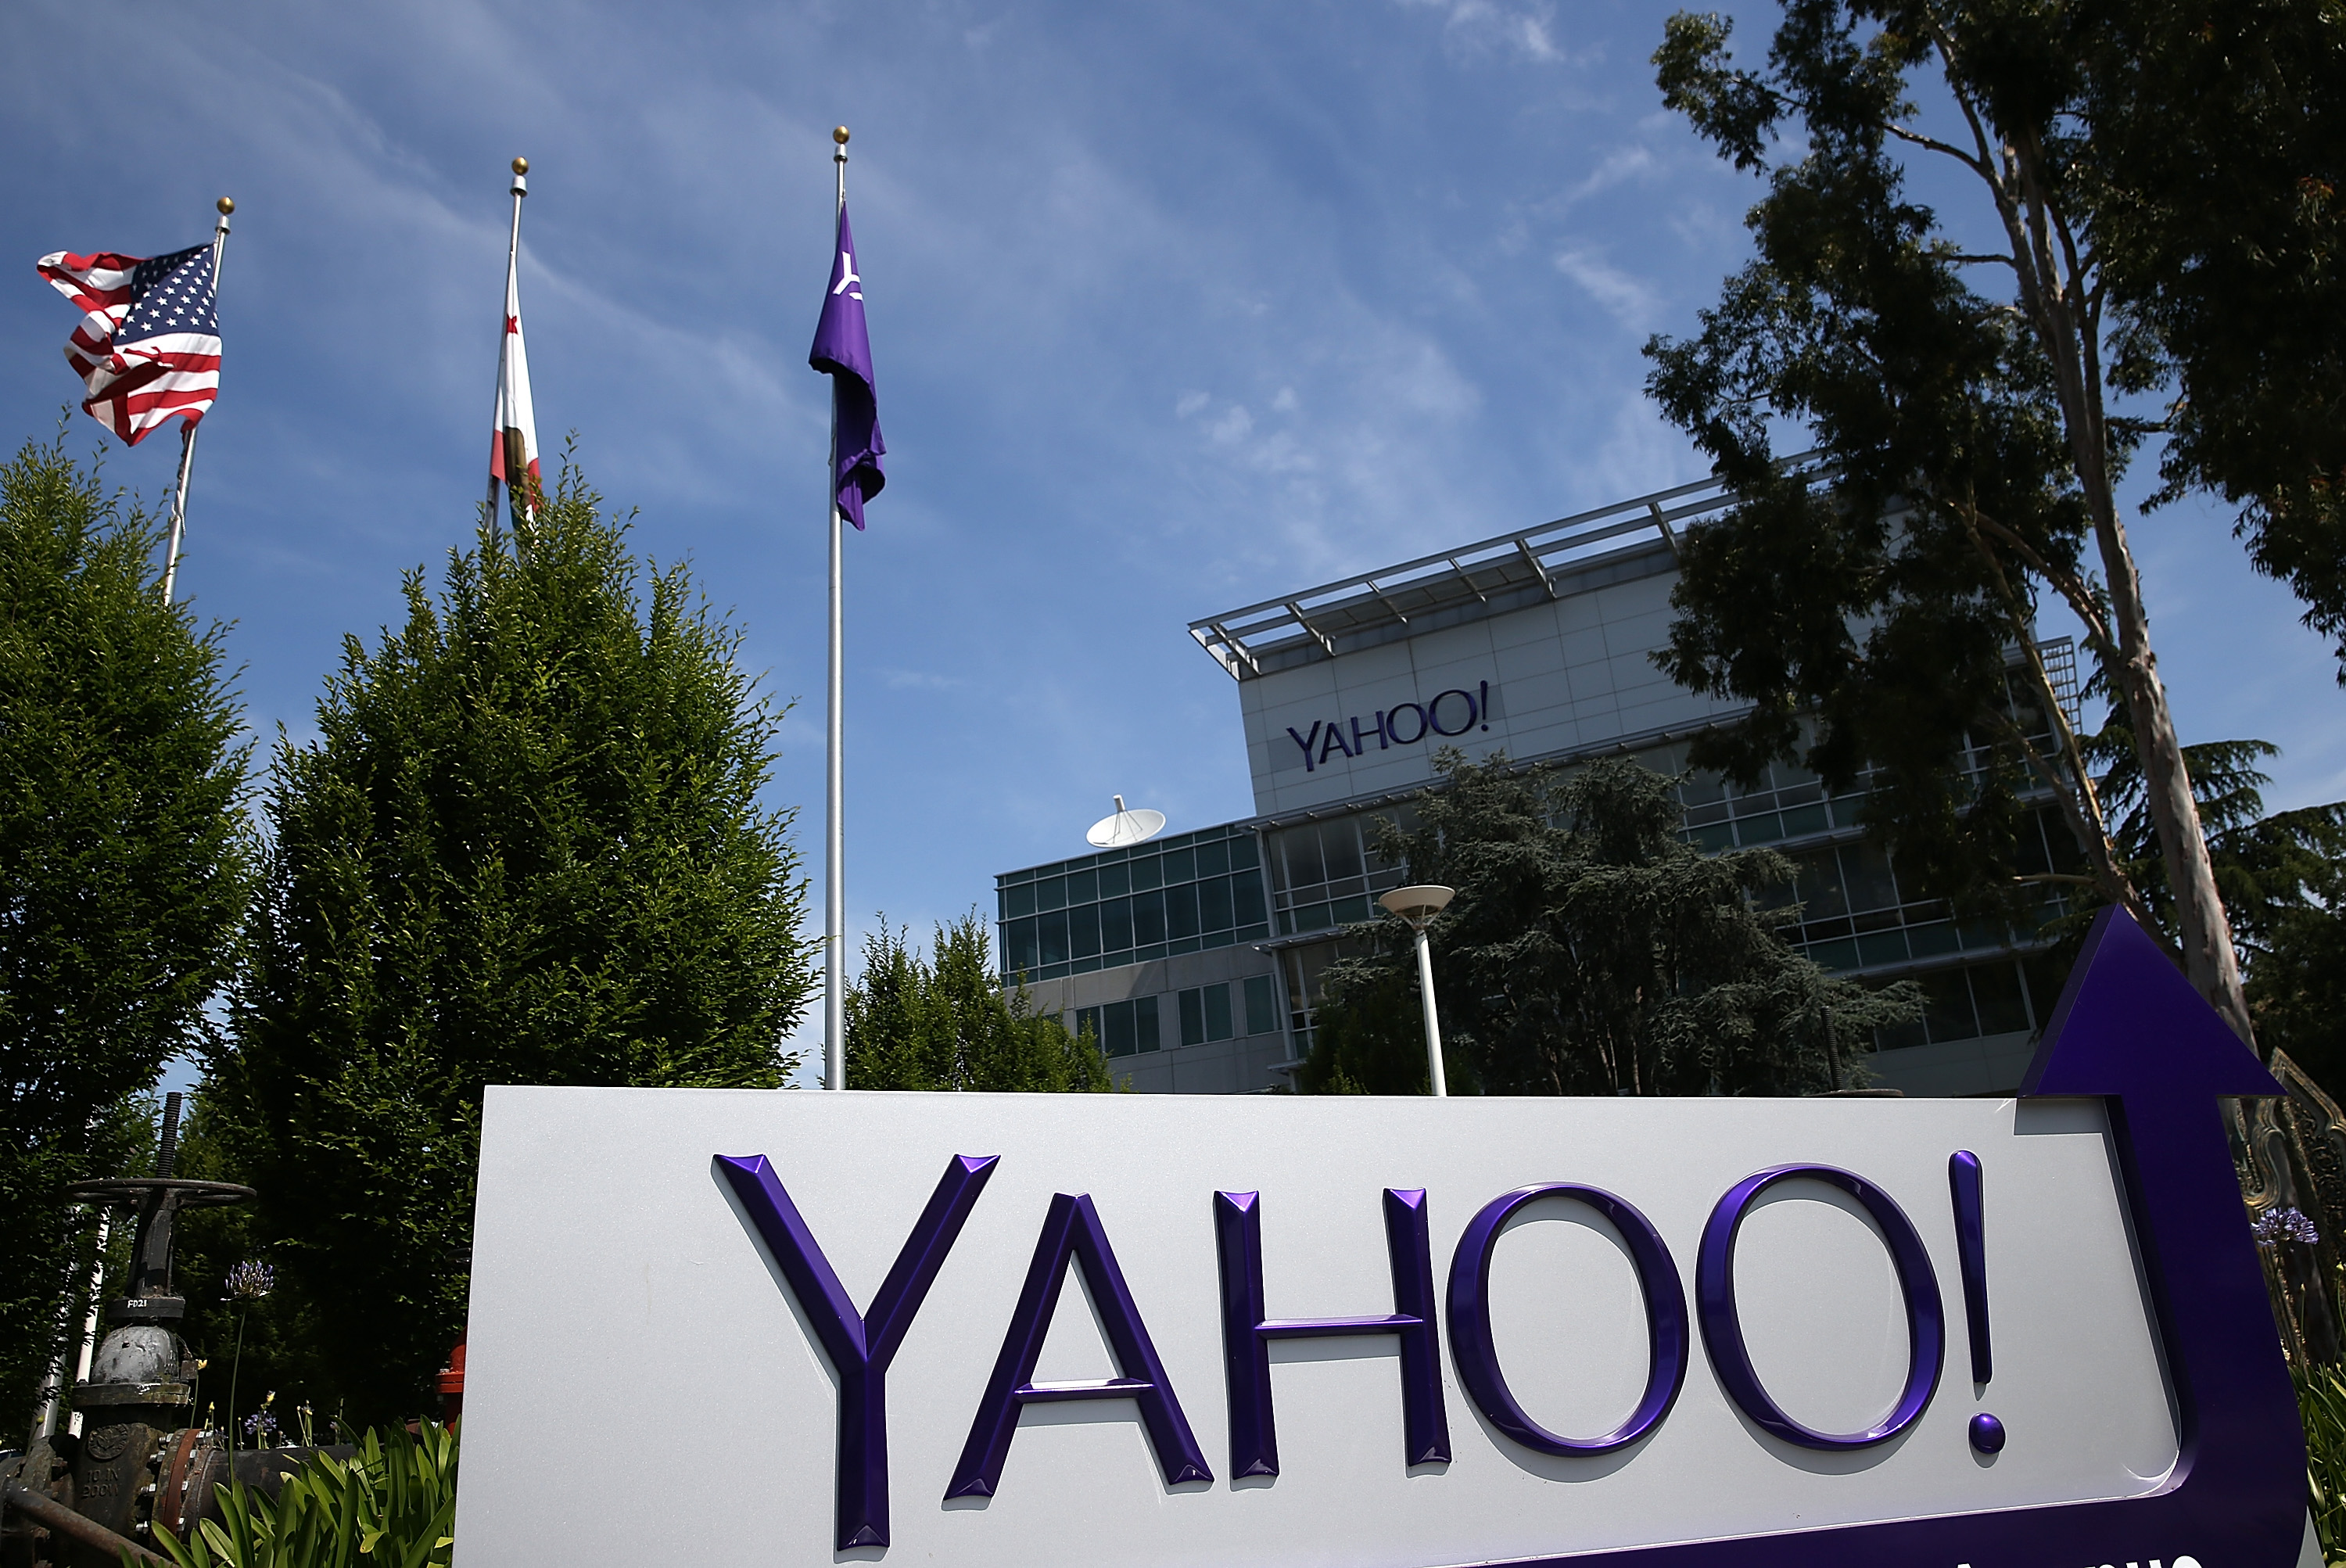 The Yahoo! headquarters in Sunnyvale, California, in May 2014.